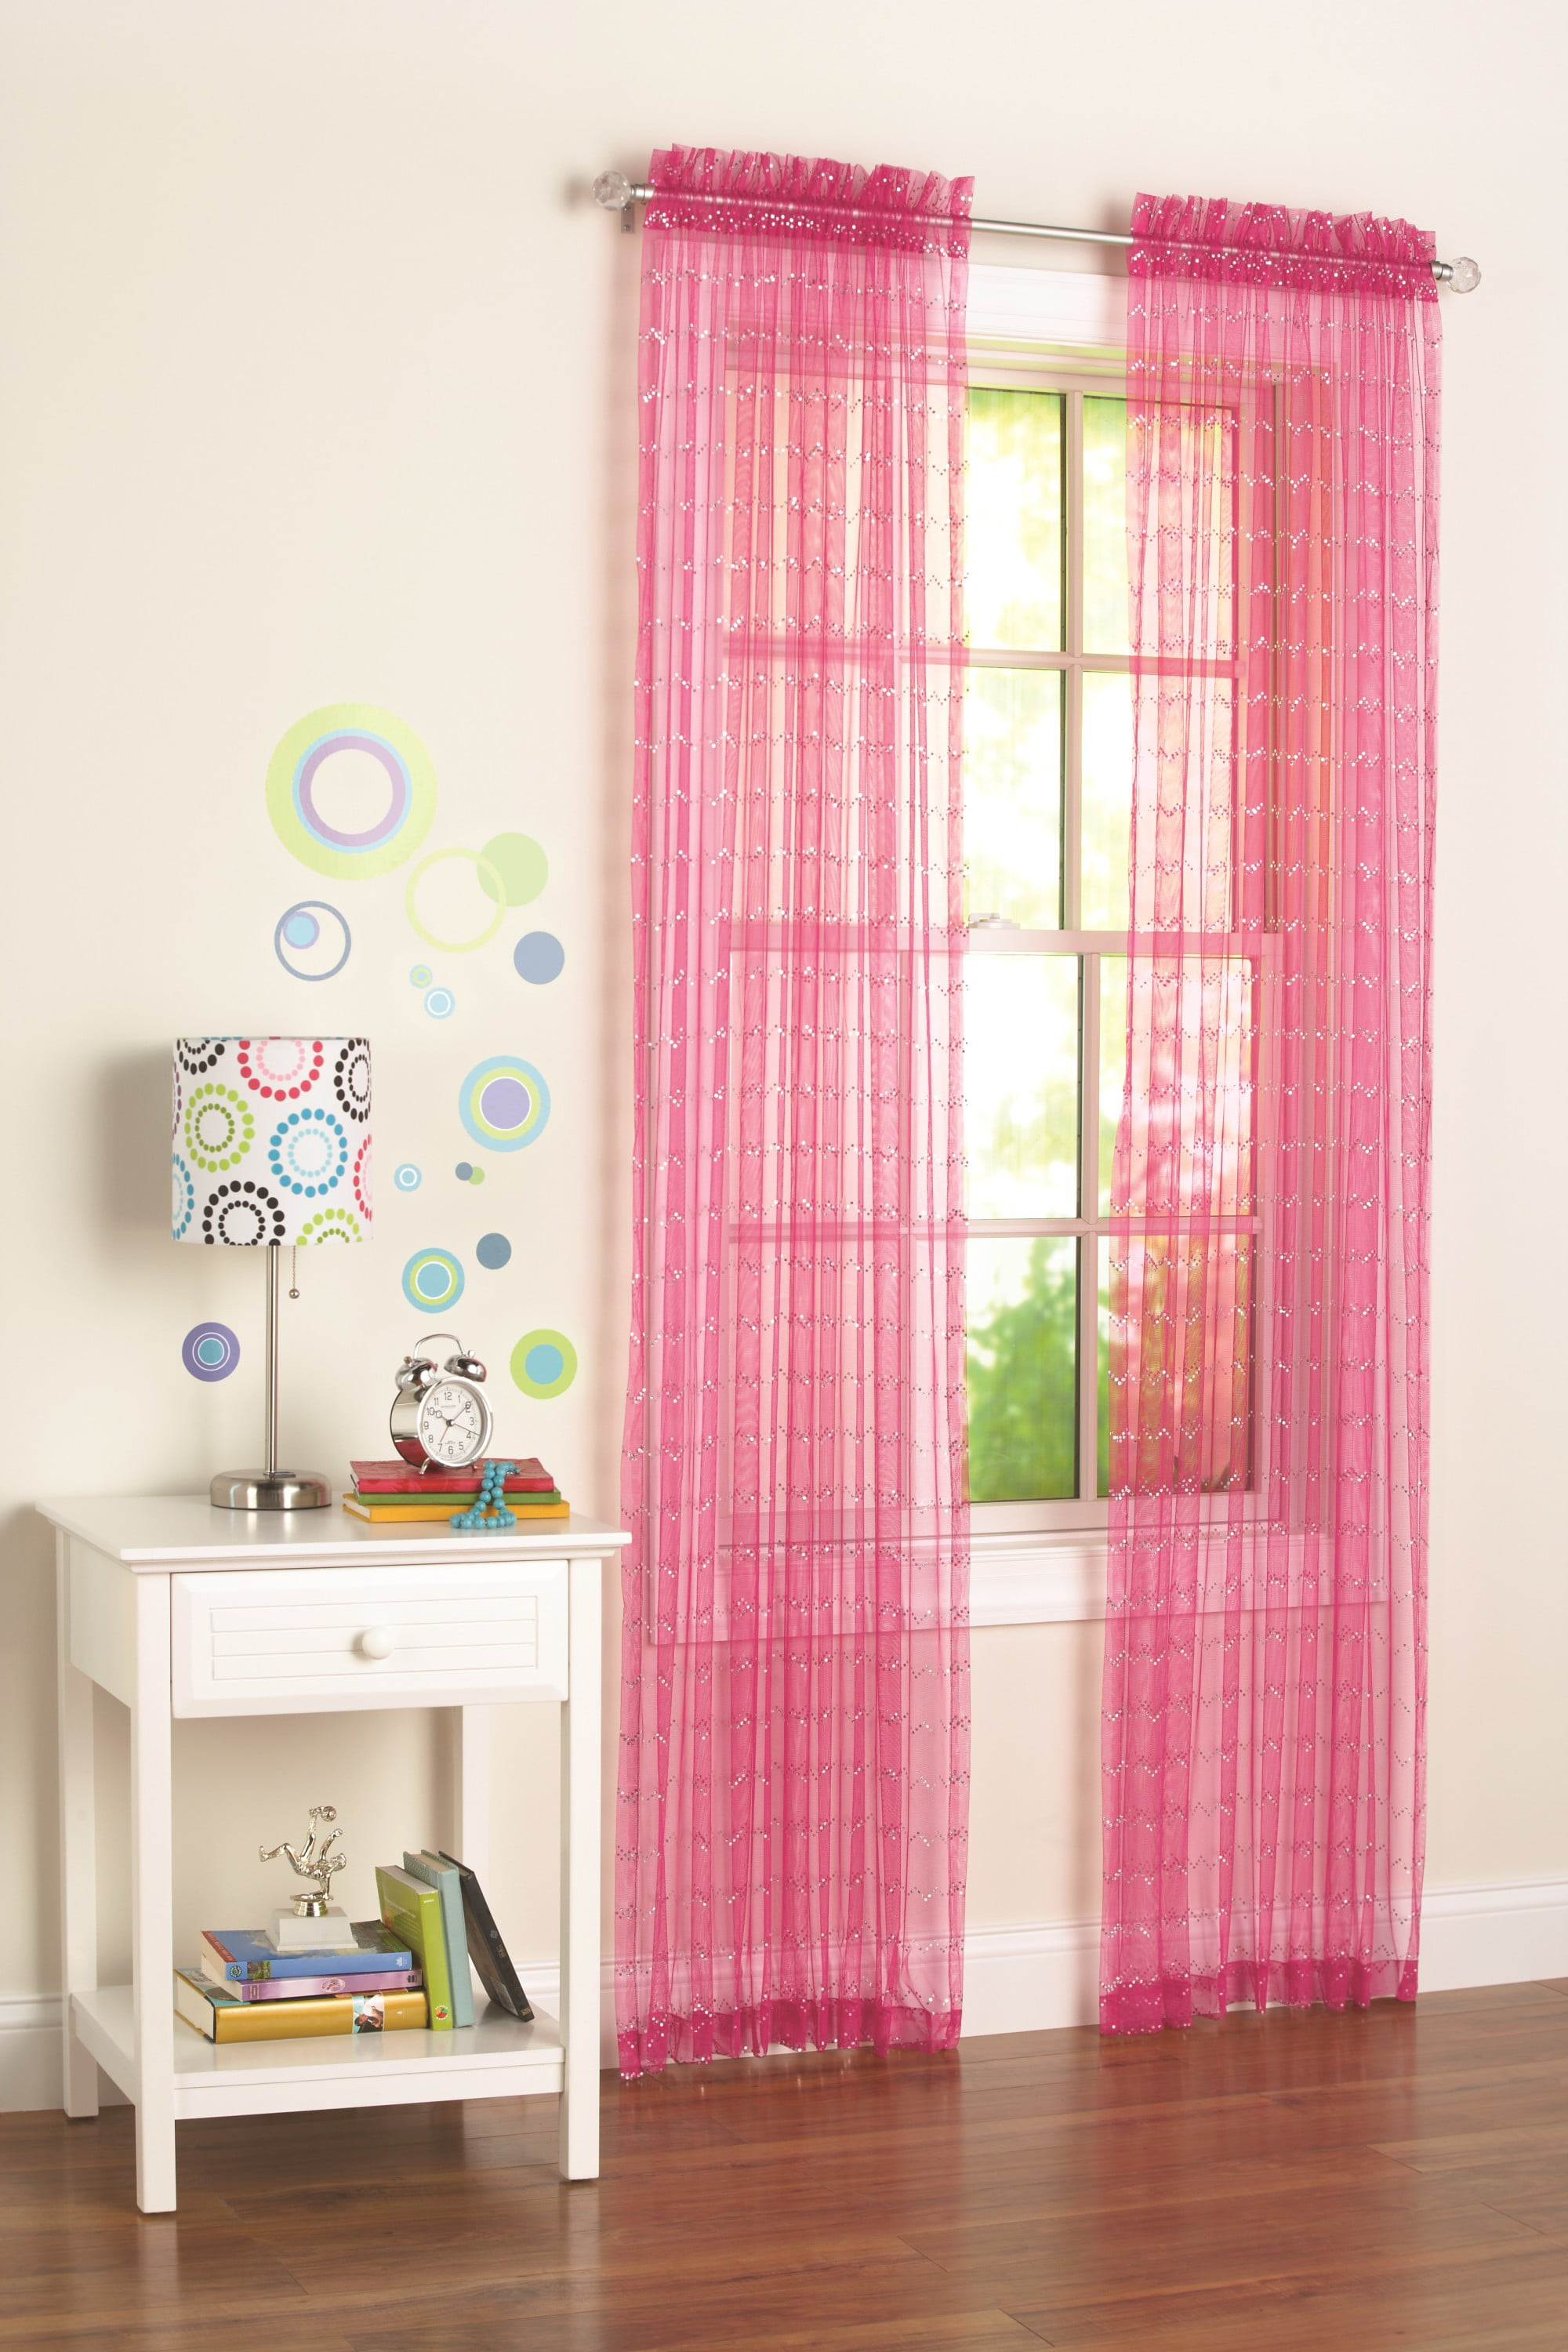 your zone single window panel pink 100 polyester 25 x 84 walmart com walmart com your zone single window panel pink 100 polyester 25 x 84 walmart com